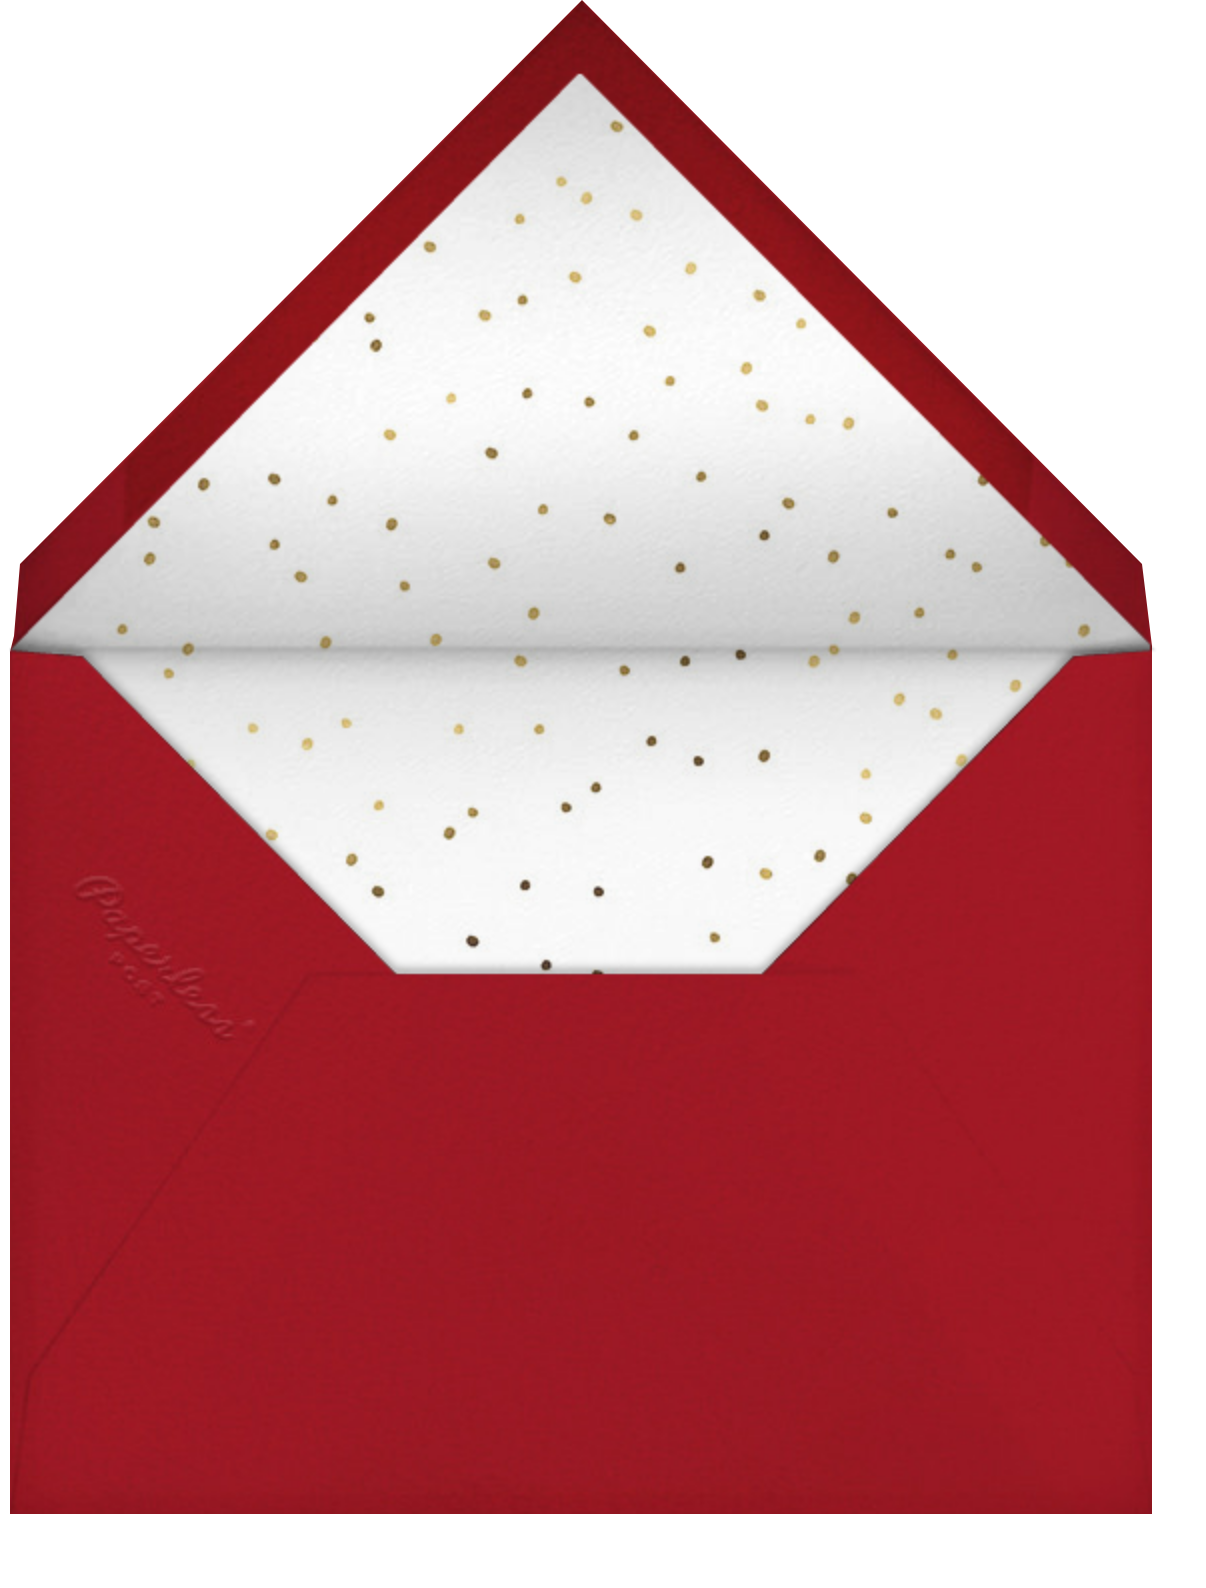 Golden Berries Photo - kate spade new york - Holiday cards - envelope back